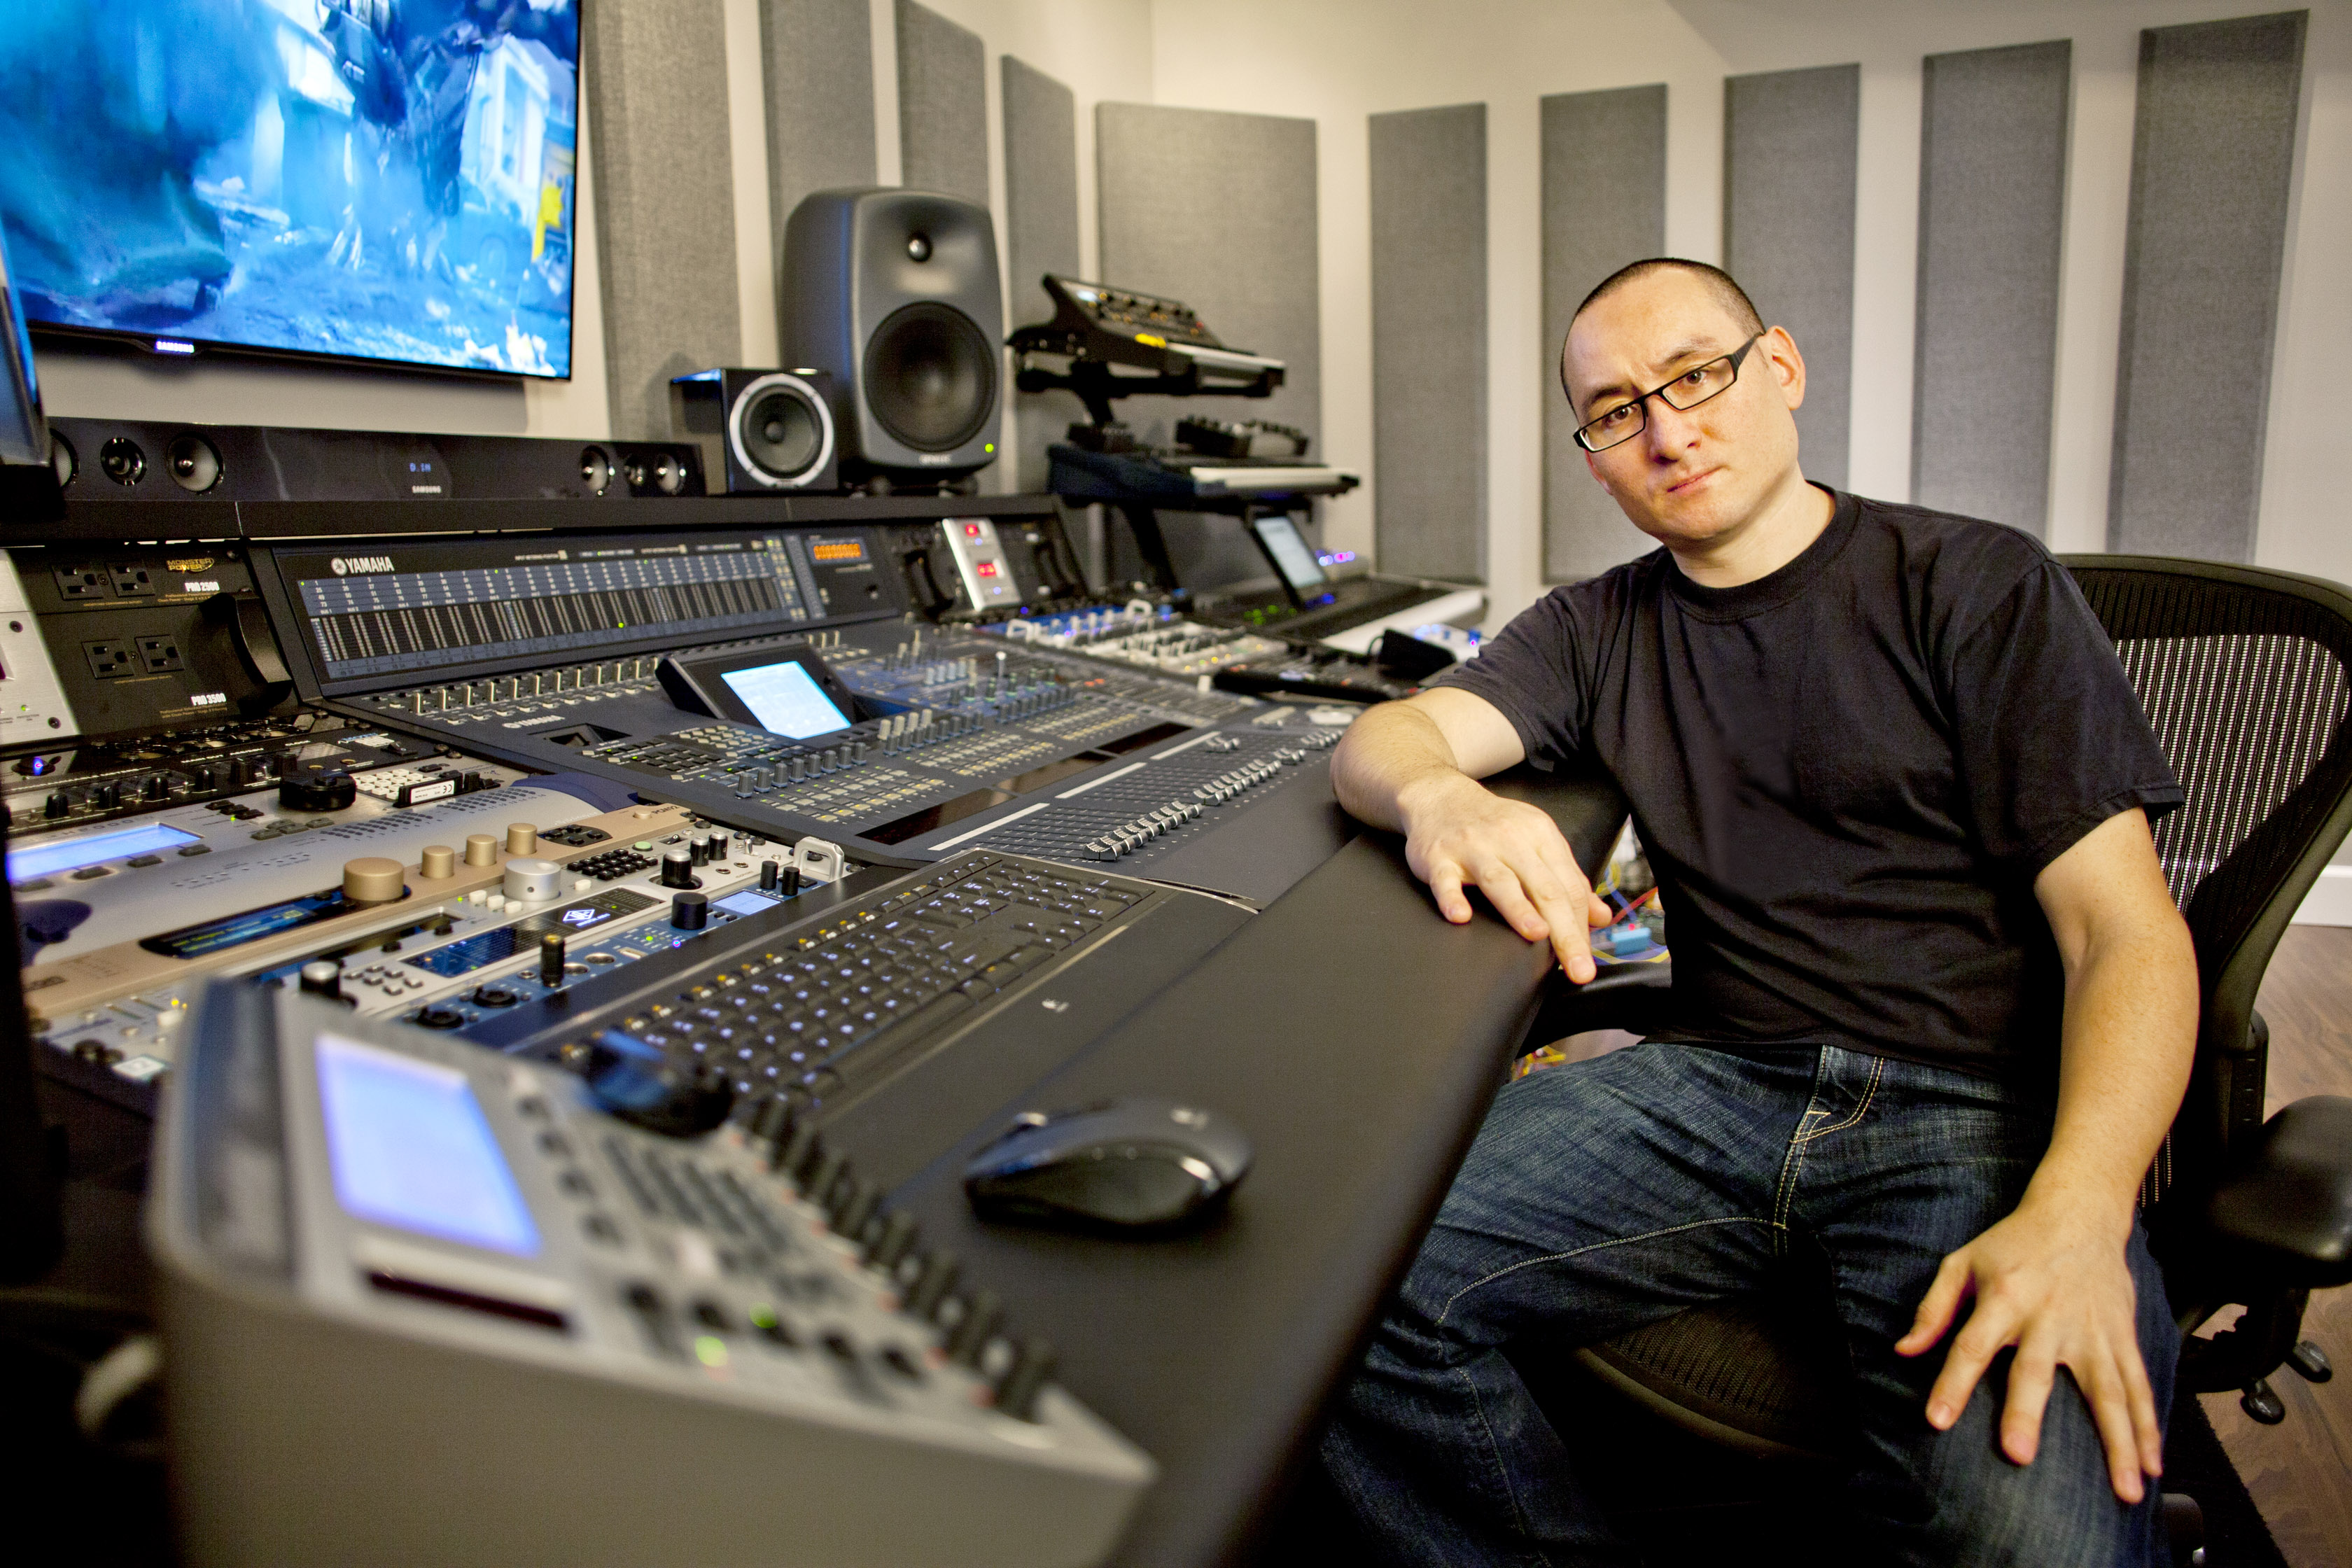 An Interview With Richard Devine About Sound Design And